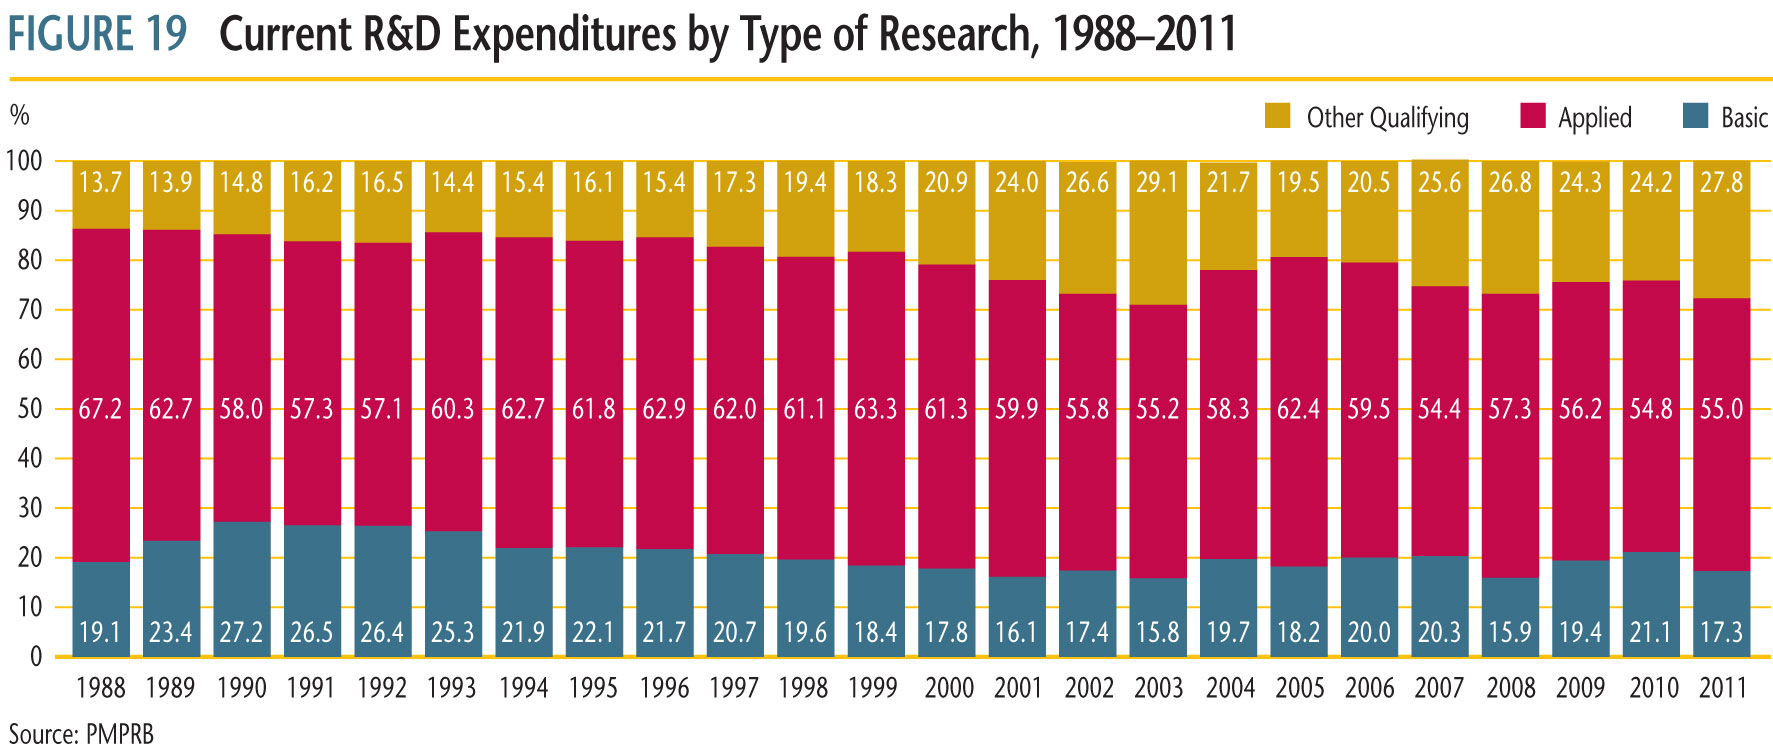 Current R&D Expenditures by type of Research